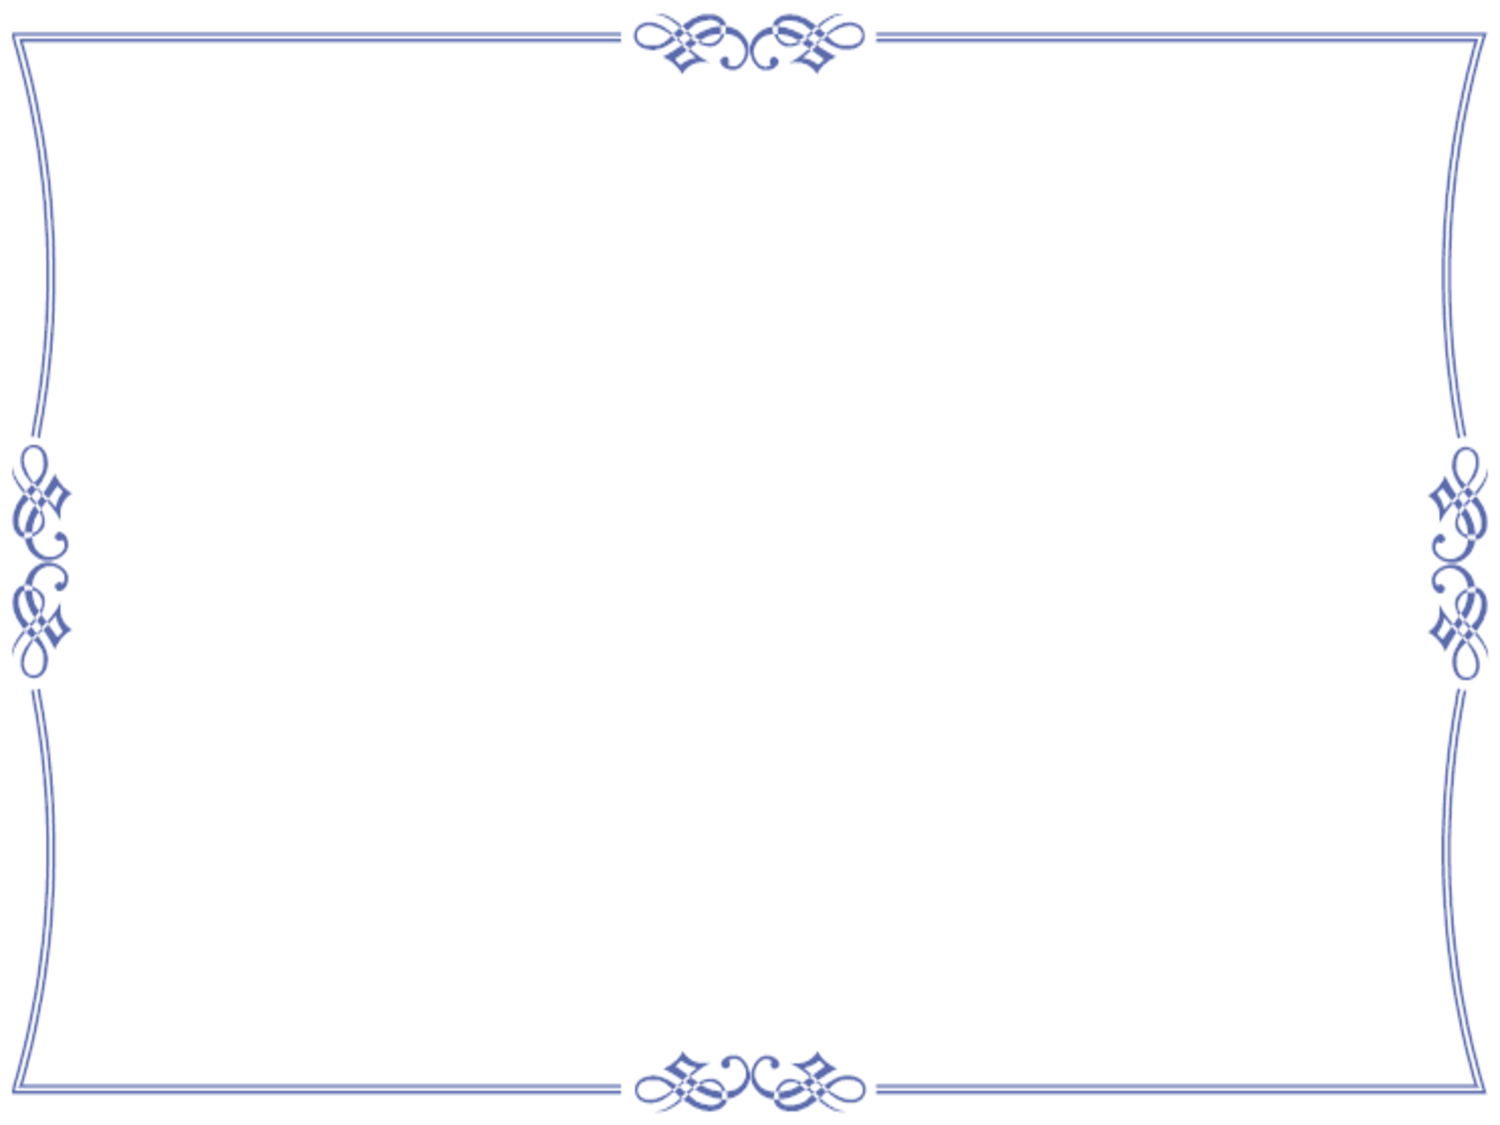 Elegant Blue Certificate Border By Bamafun